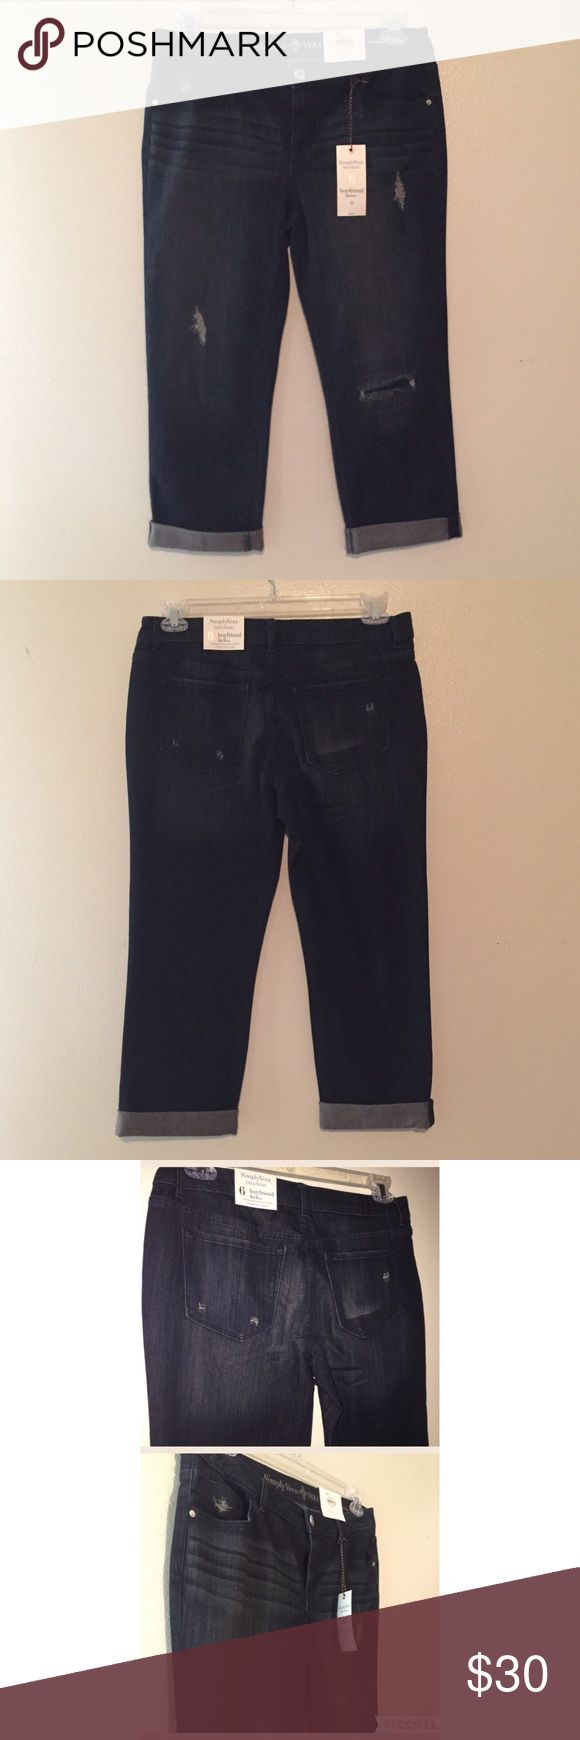 🎉Final Price Drop🎉Simply Vera Boyfriend Capri 6 Simply Vera by Vera Wang Boyfriend Capri Size 6. Brand new with tags! Simply Vera Vera Wang Pants Capris